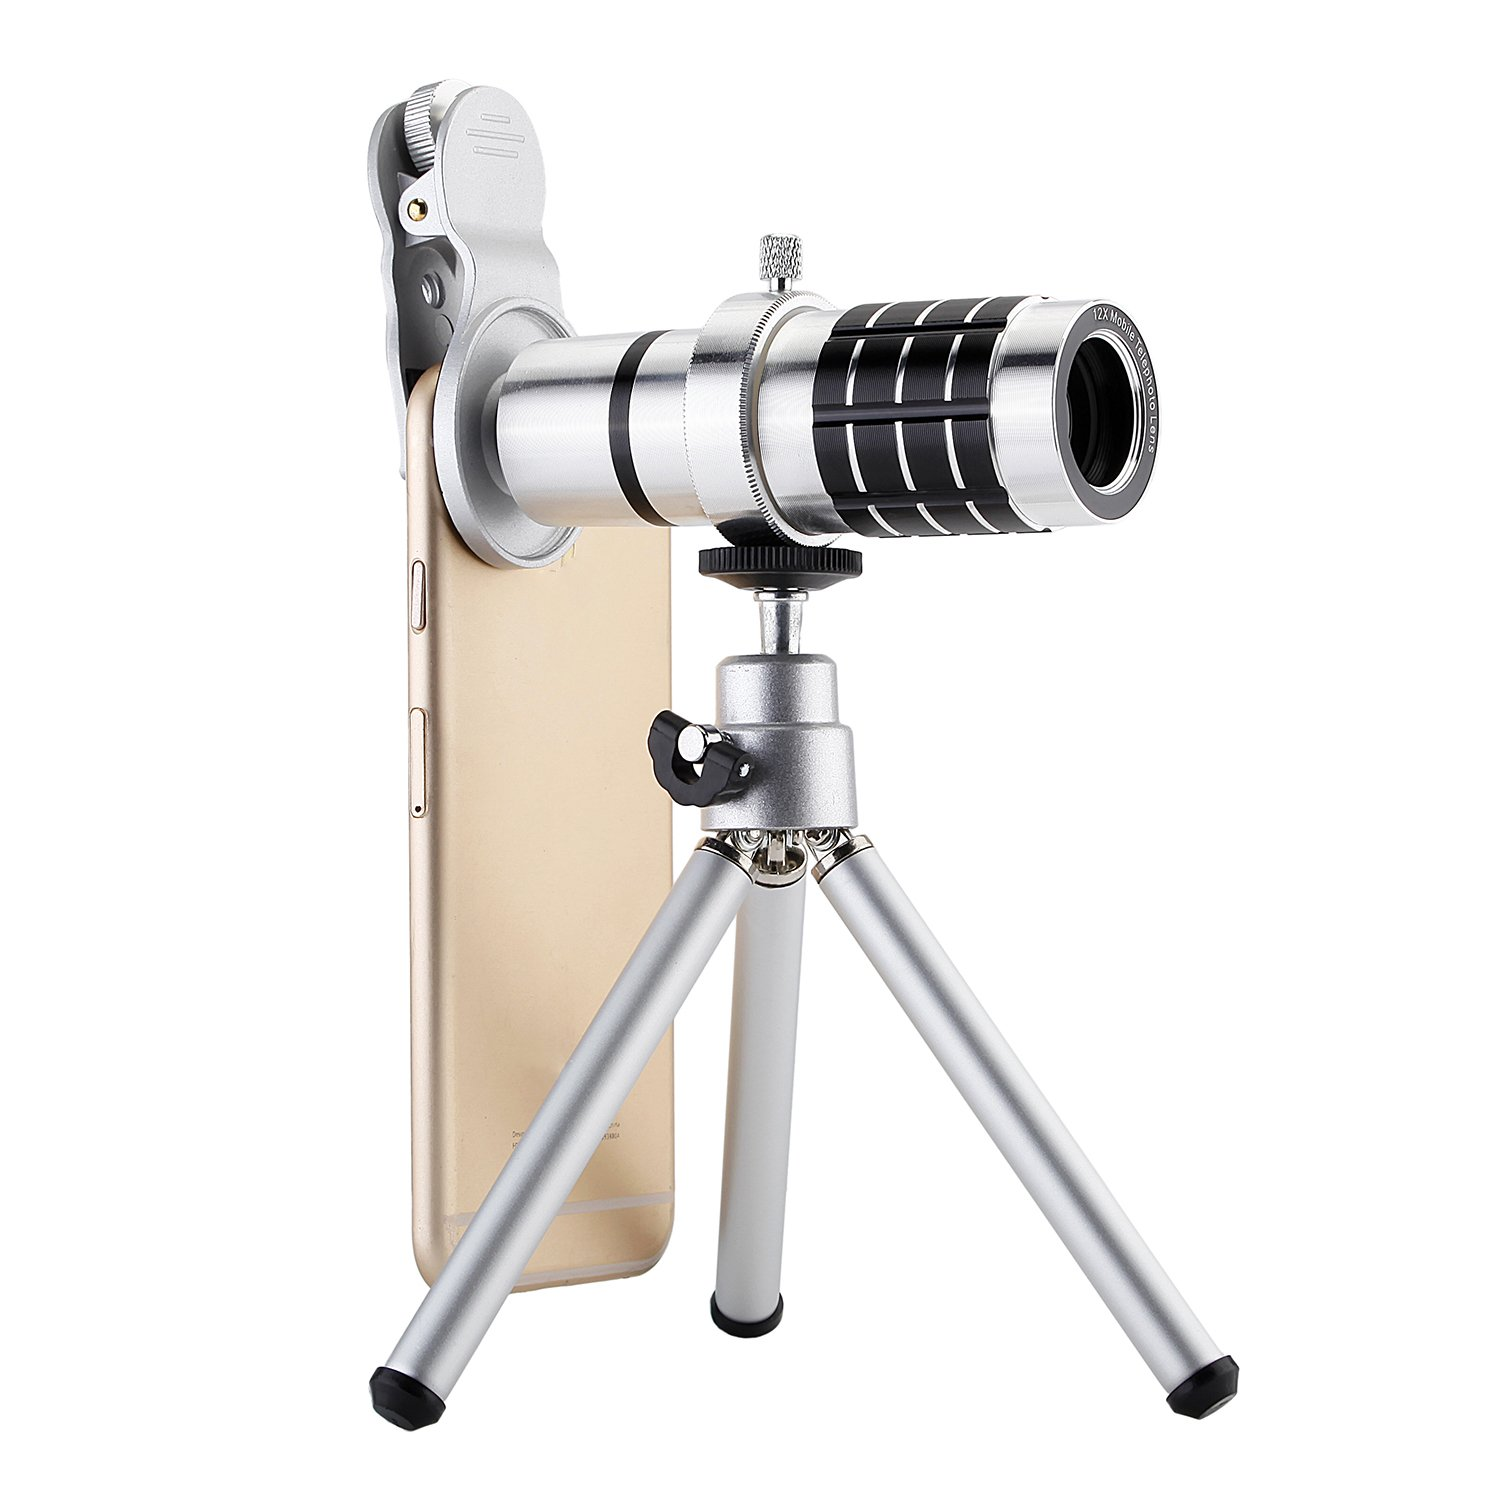 Toogoo Camera Lens Universal Clip-On Phone 12X Optical Zoom Telephoto Lens for iPhone Samsung Huawei Ipad Tablet PC Laptops(Silver)